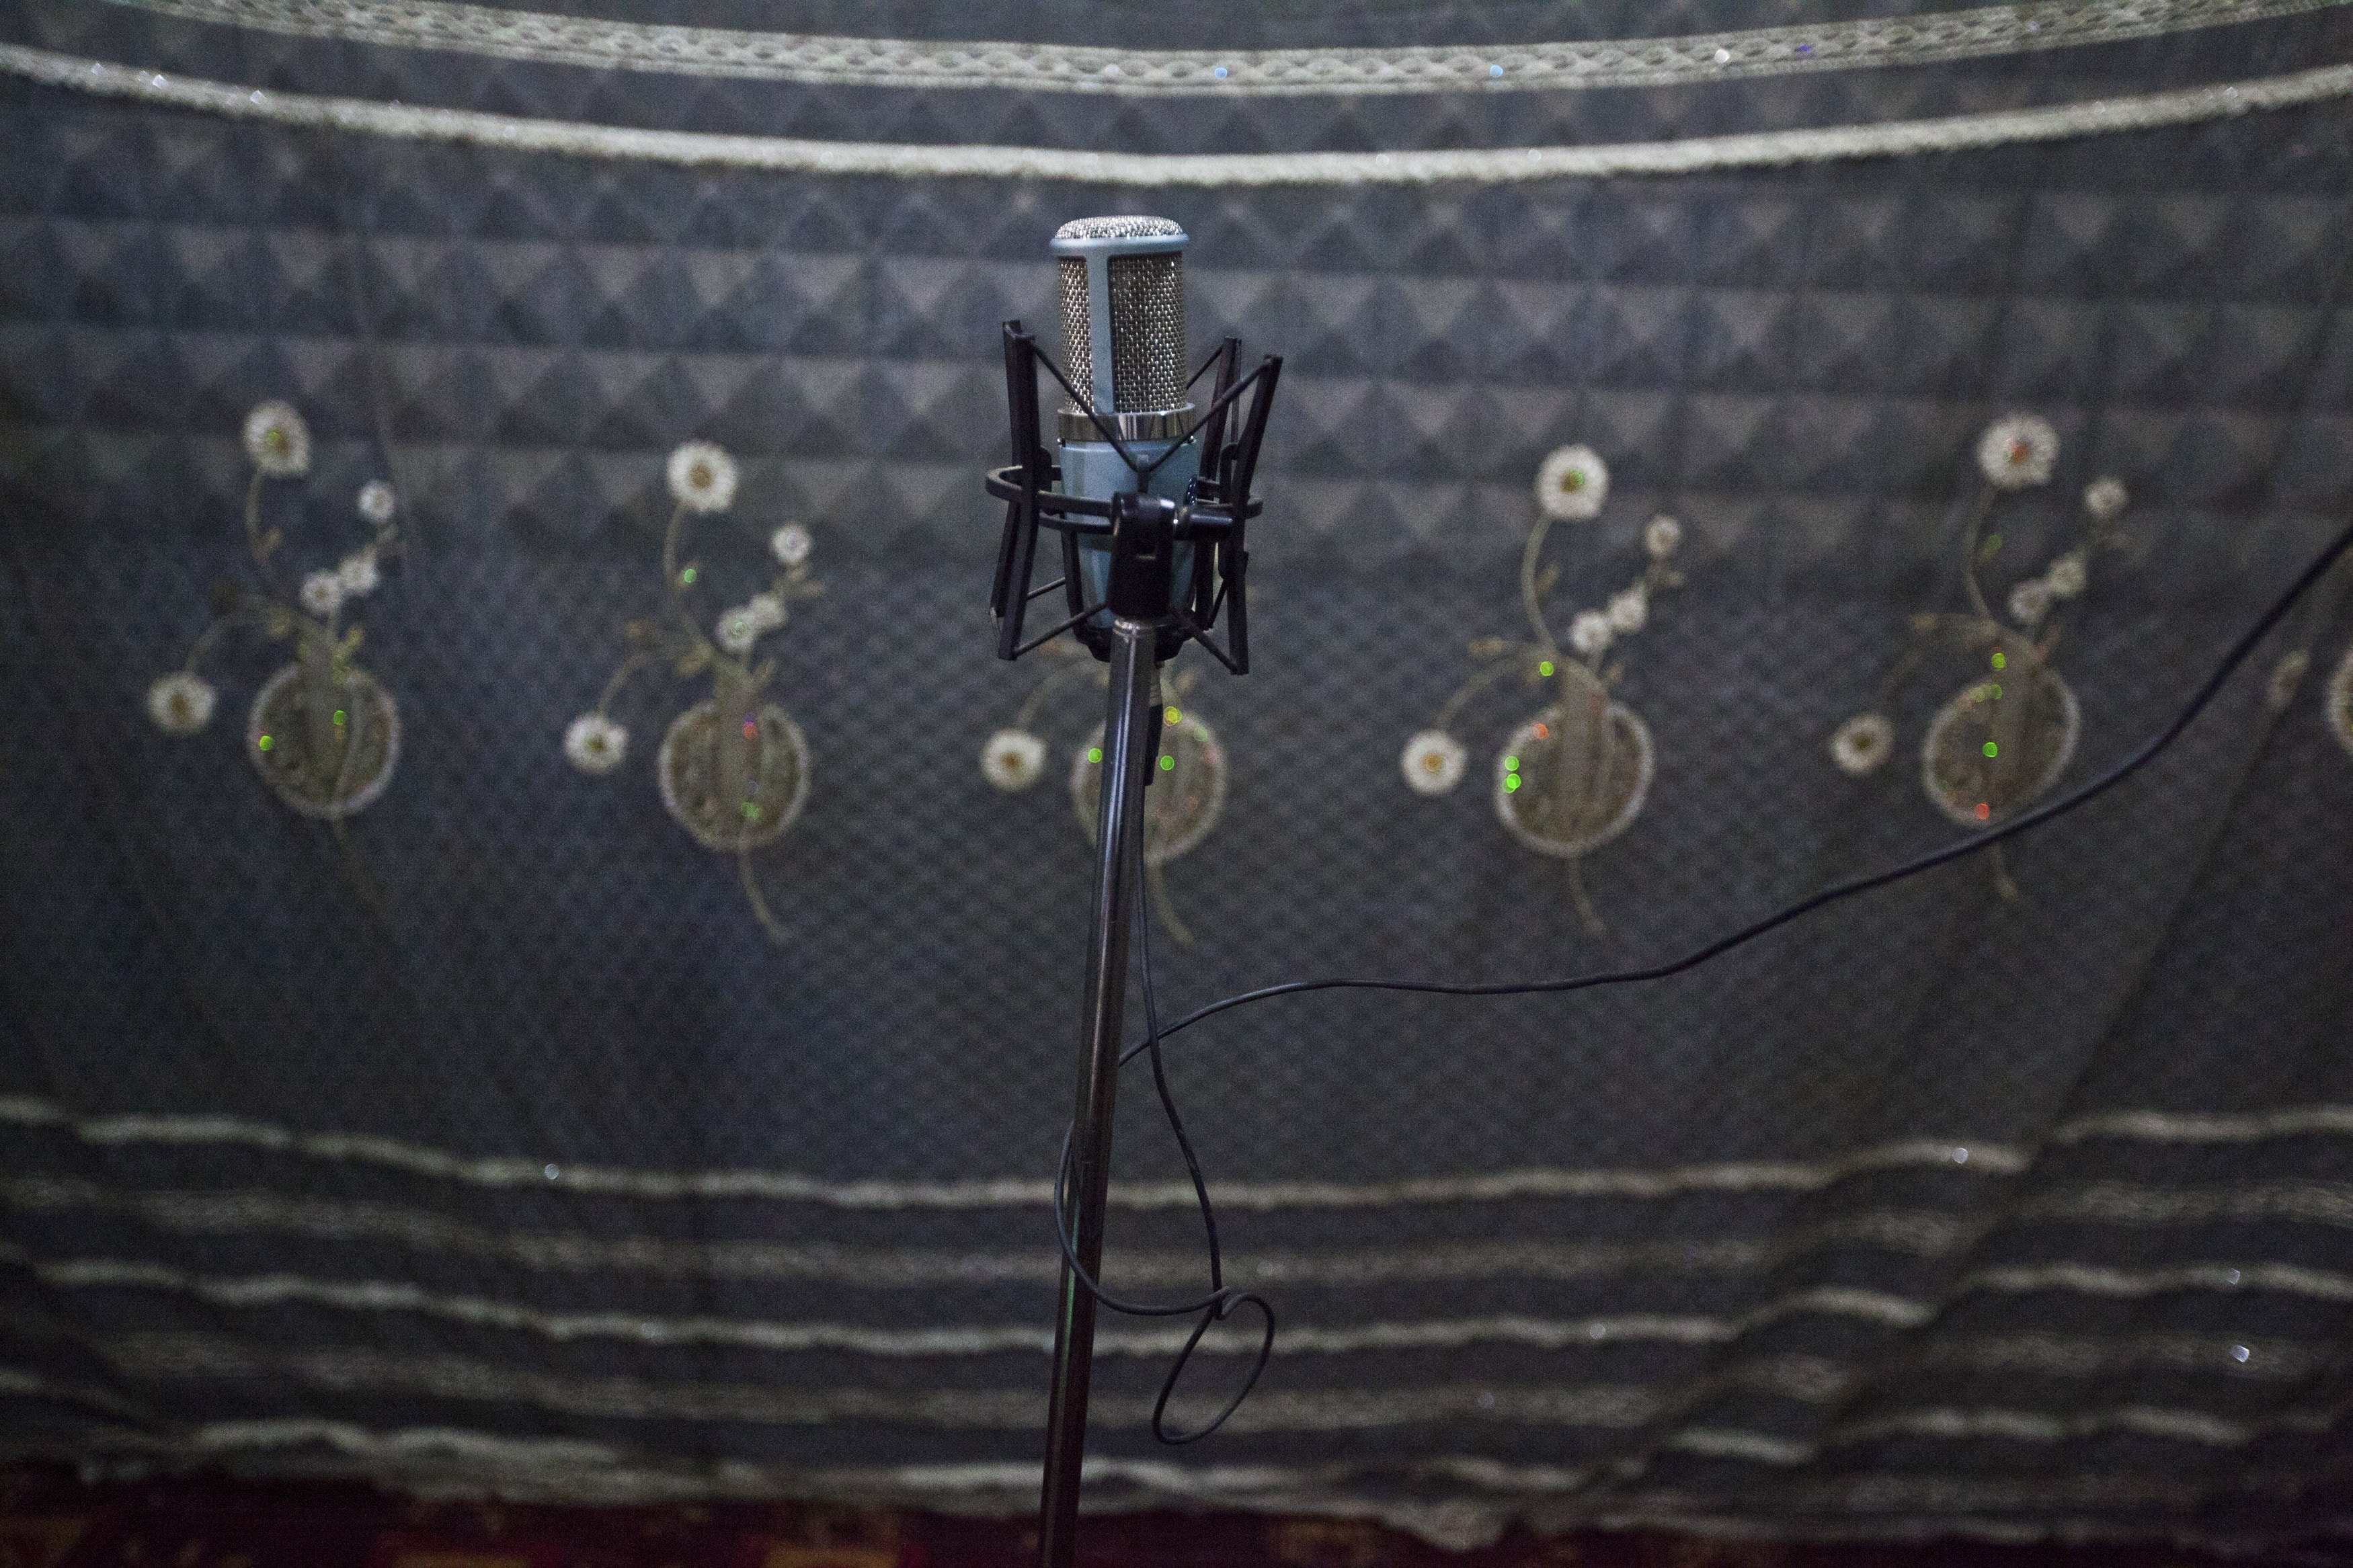 A microphone is seen inside Bakhita Radio station in Juba, 28 May 2012, REUTERS/Adriane Ohanesian